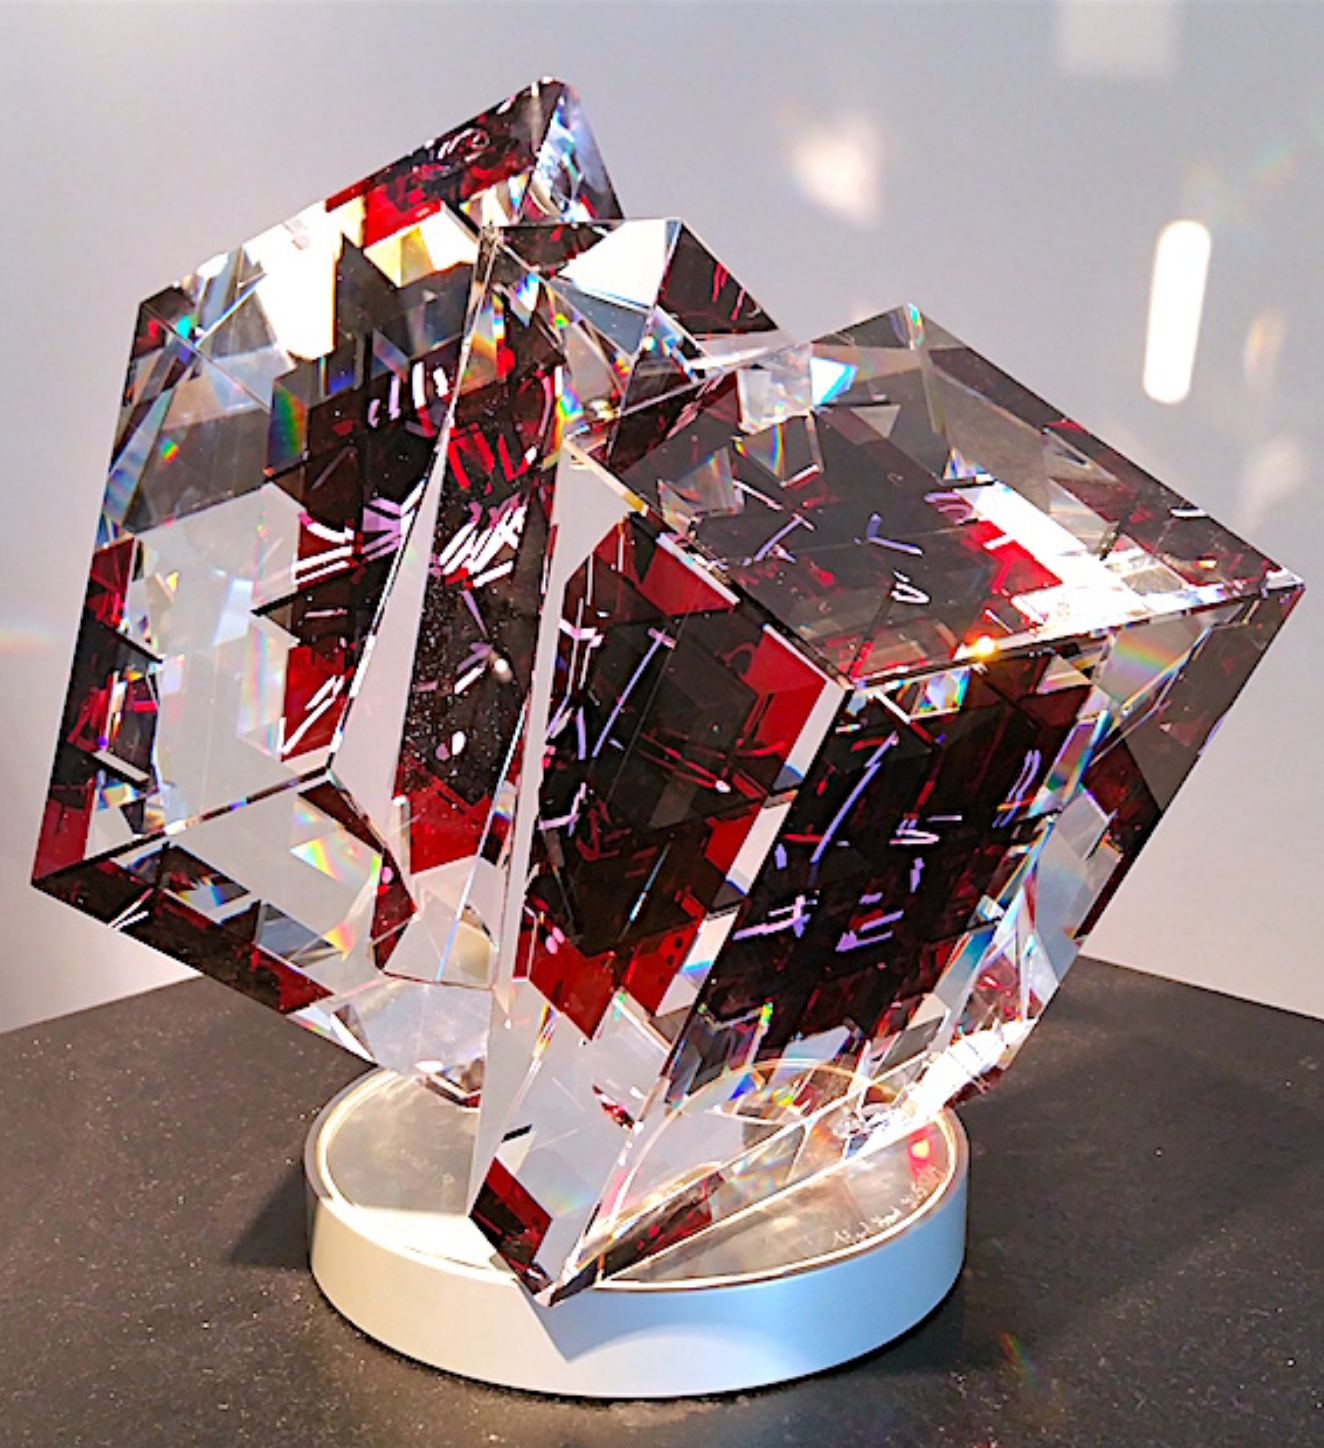 Polished and laminated glass sculpture by artist Toland Sand